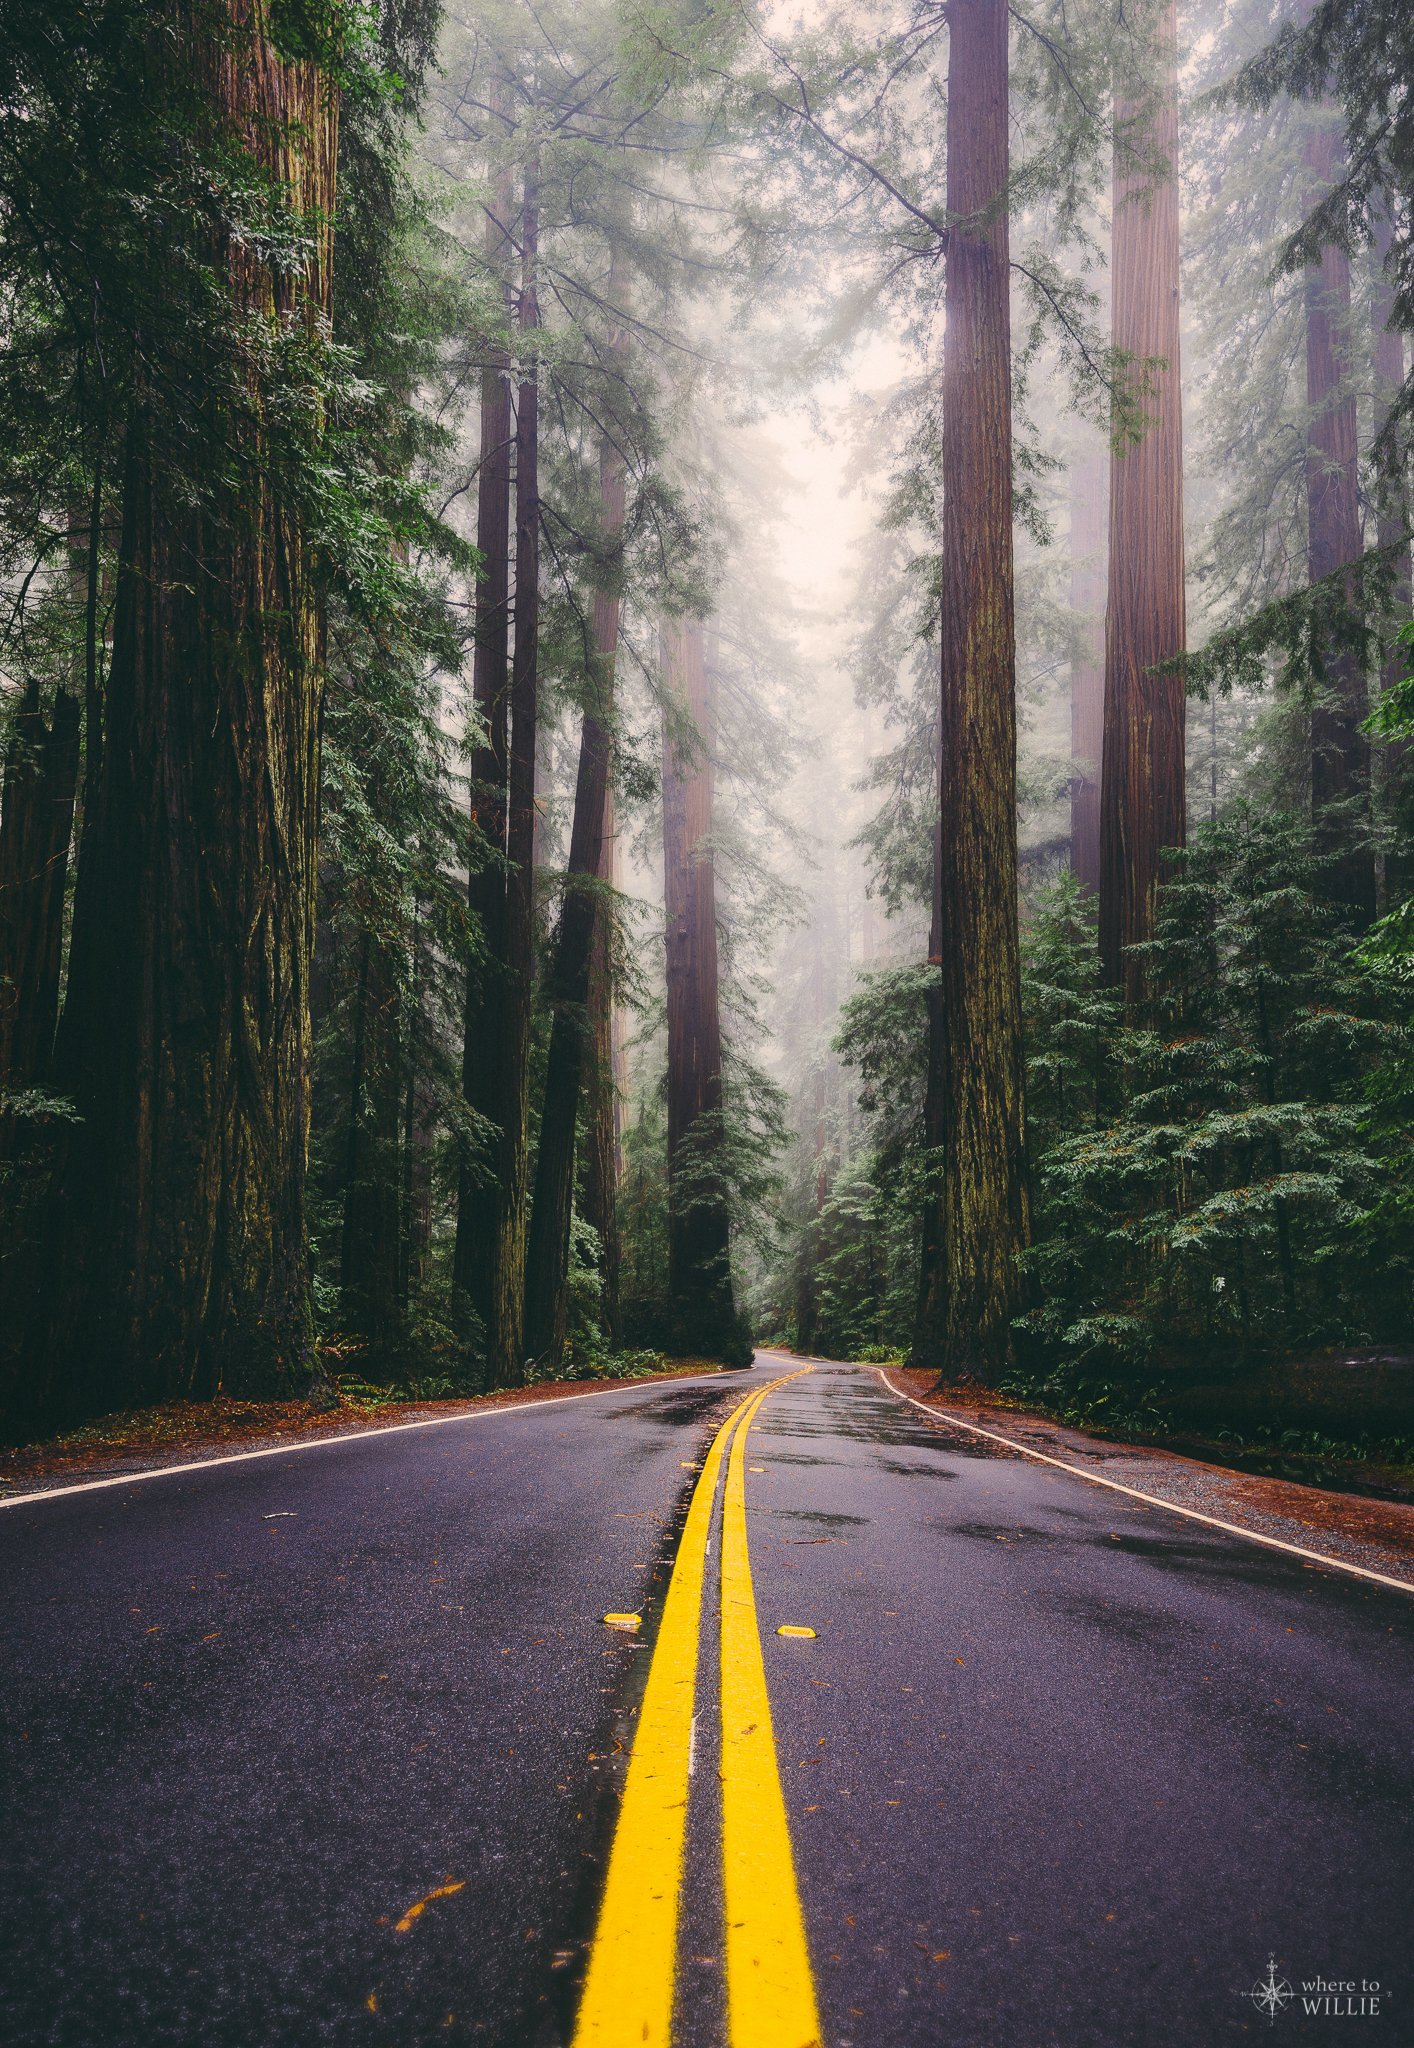 follow me home avenue of the giants redwoods national park california where to willie. Black Bedroom Furniture Sets. Home Design Ideas